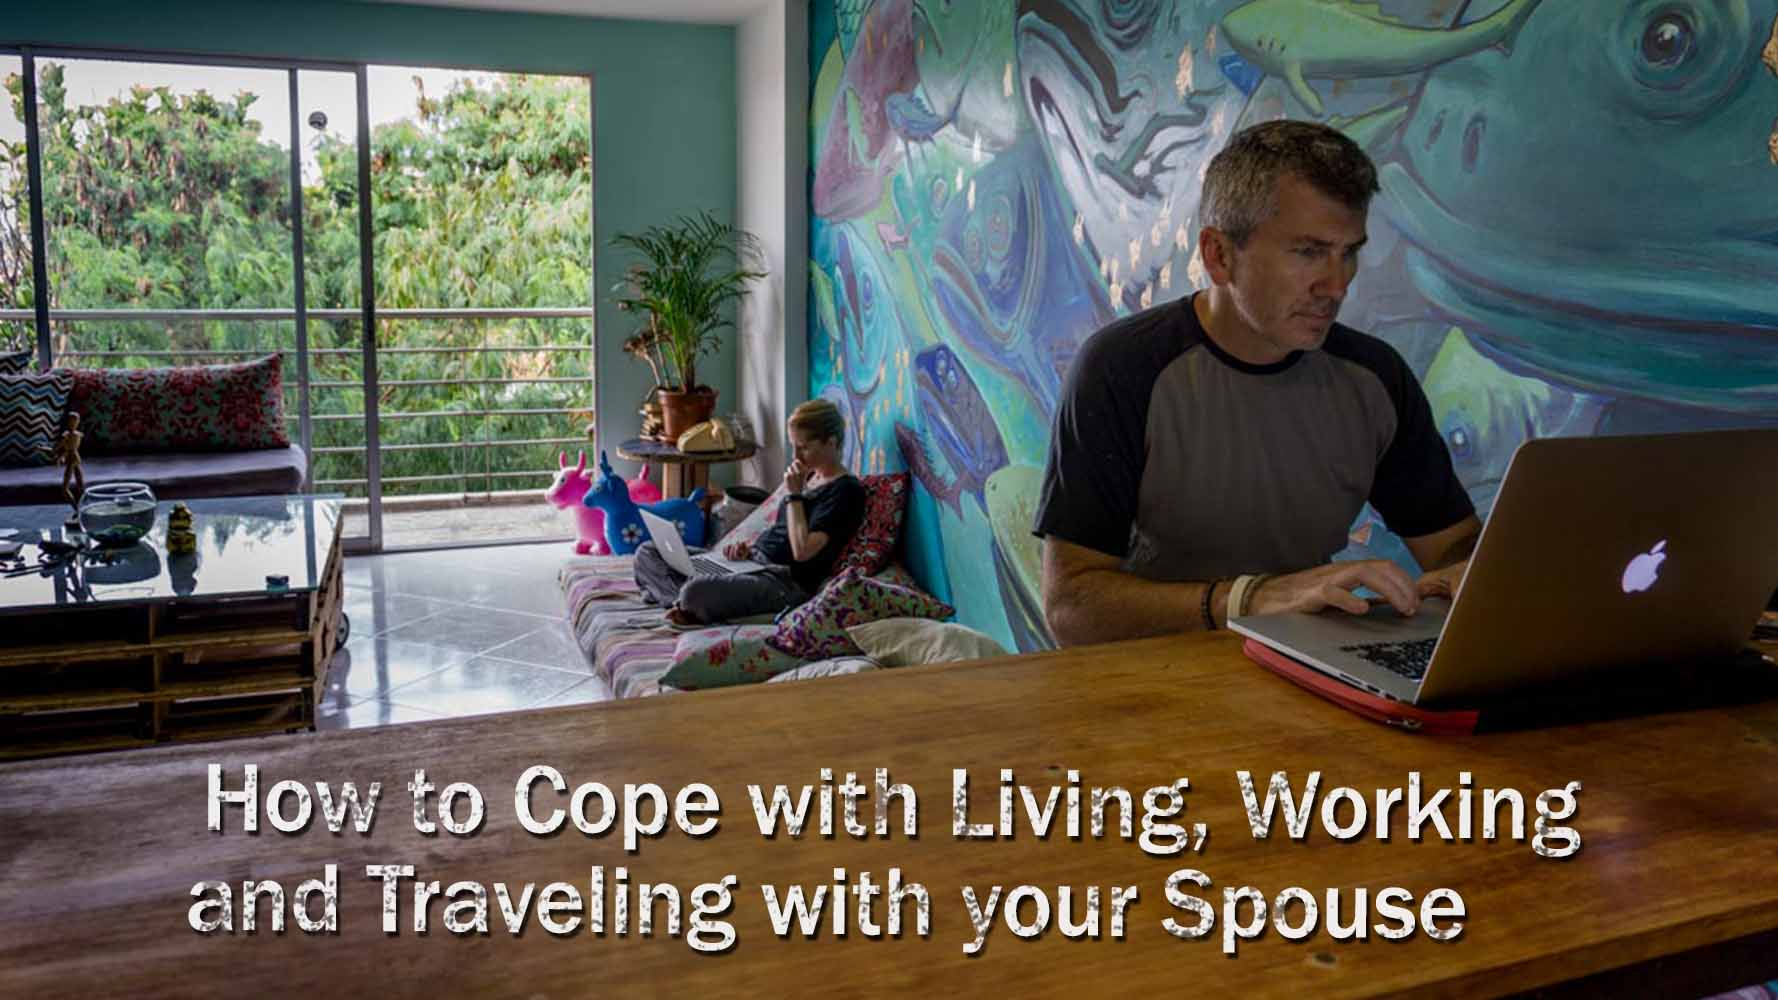 How To Cope With Living, Working And Traveling With Your Spouse